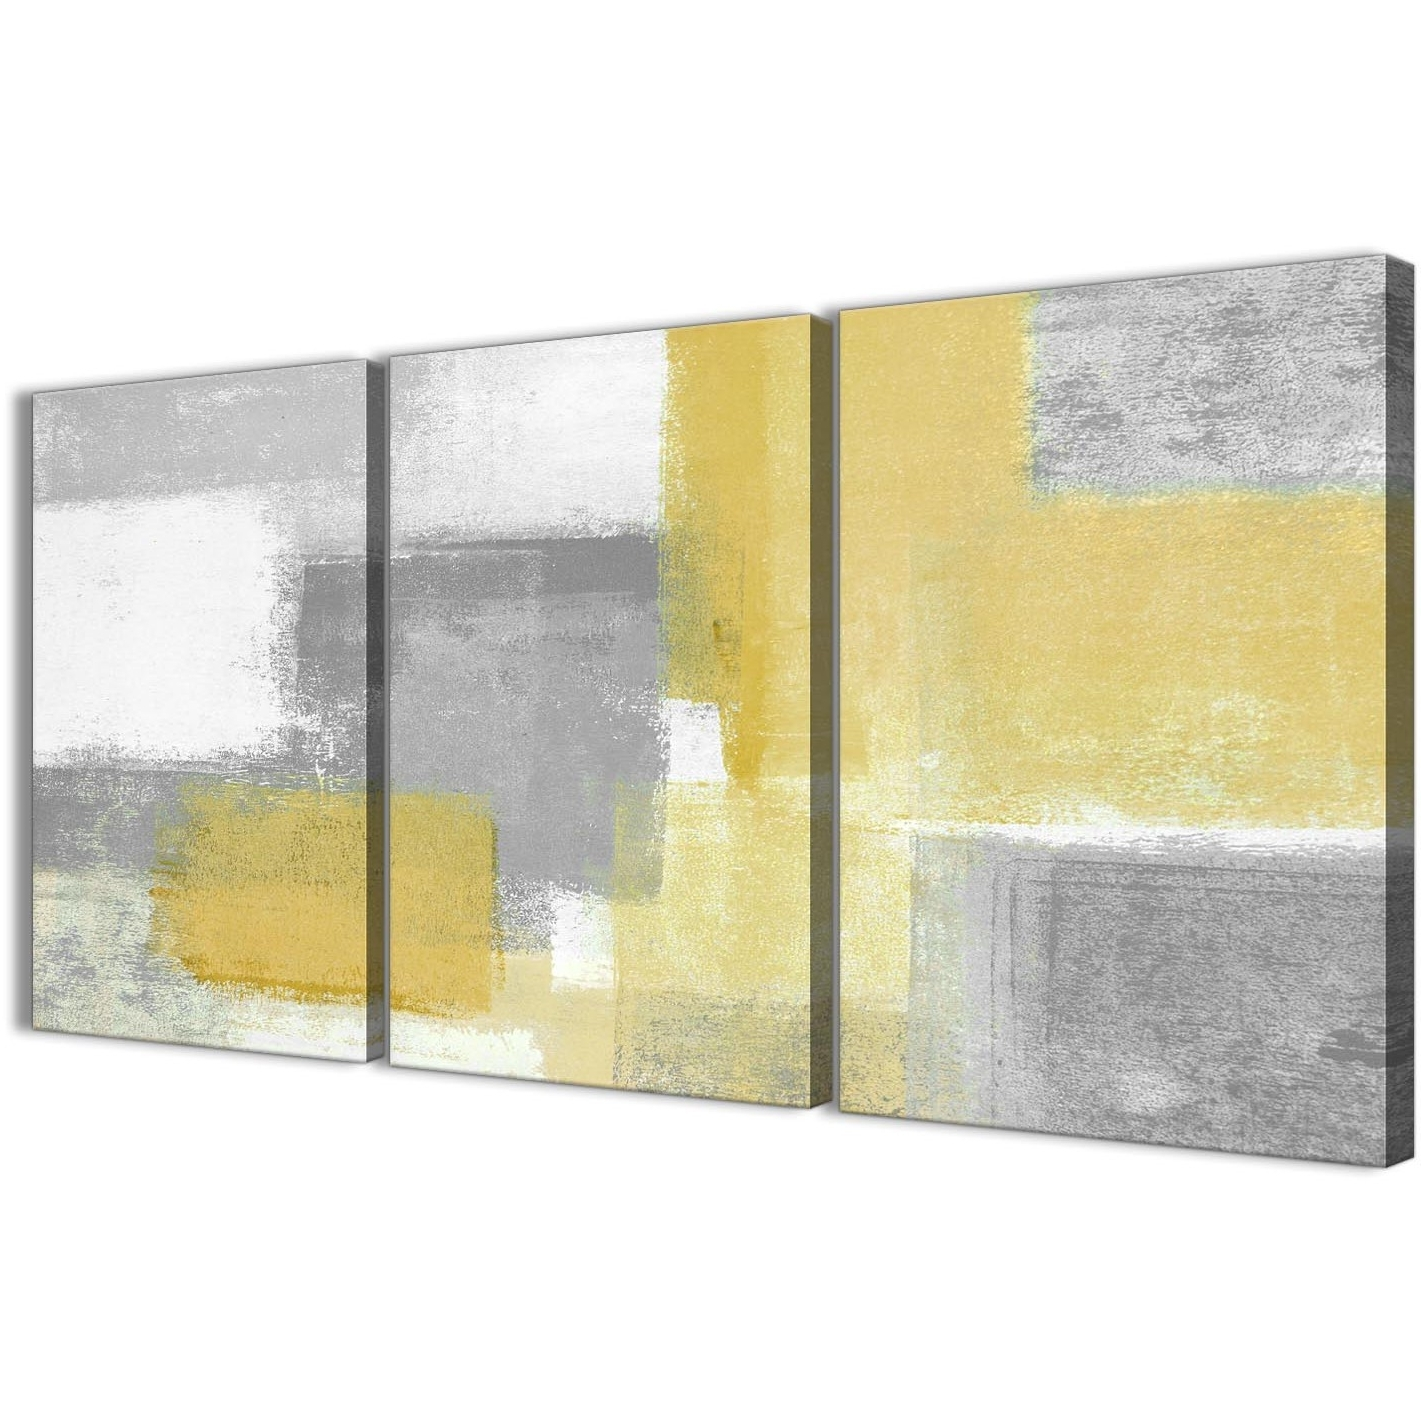 Widely Used Yellow Wall Art Intended For 3 Panel Mustard Yellow Grey Kitchen Canvas Wall Art Decor – Abstract (View 11 of 20)